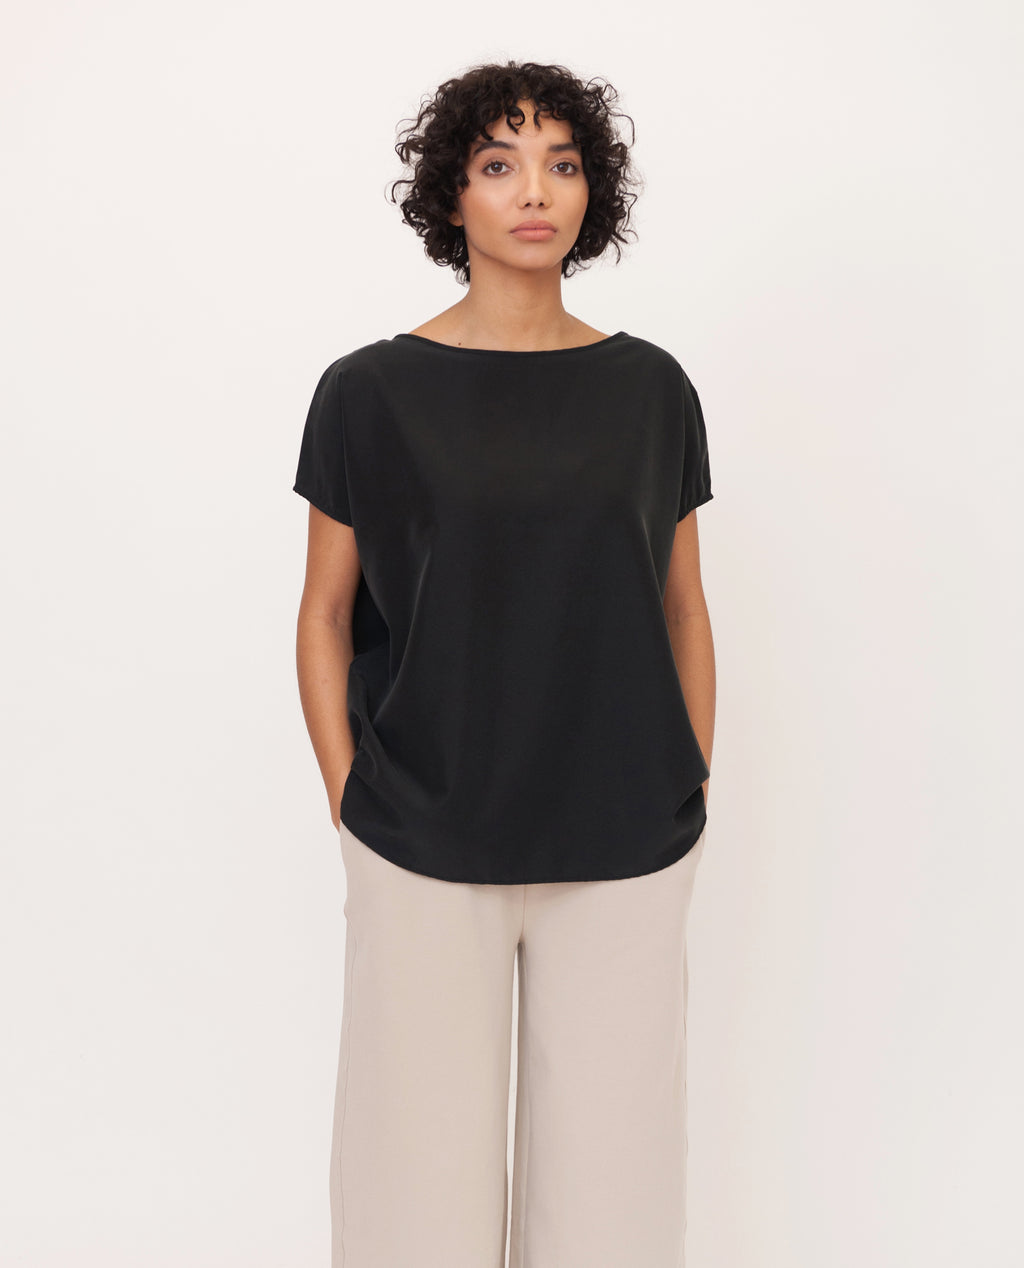 ALINE Modal Top In Black